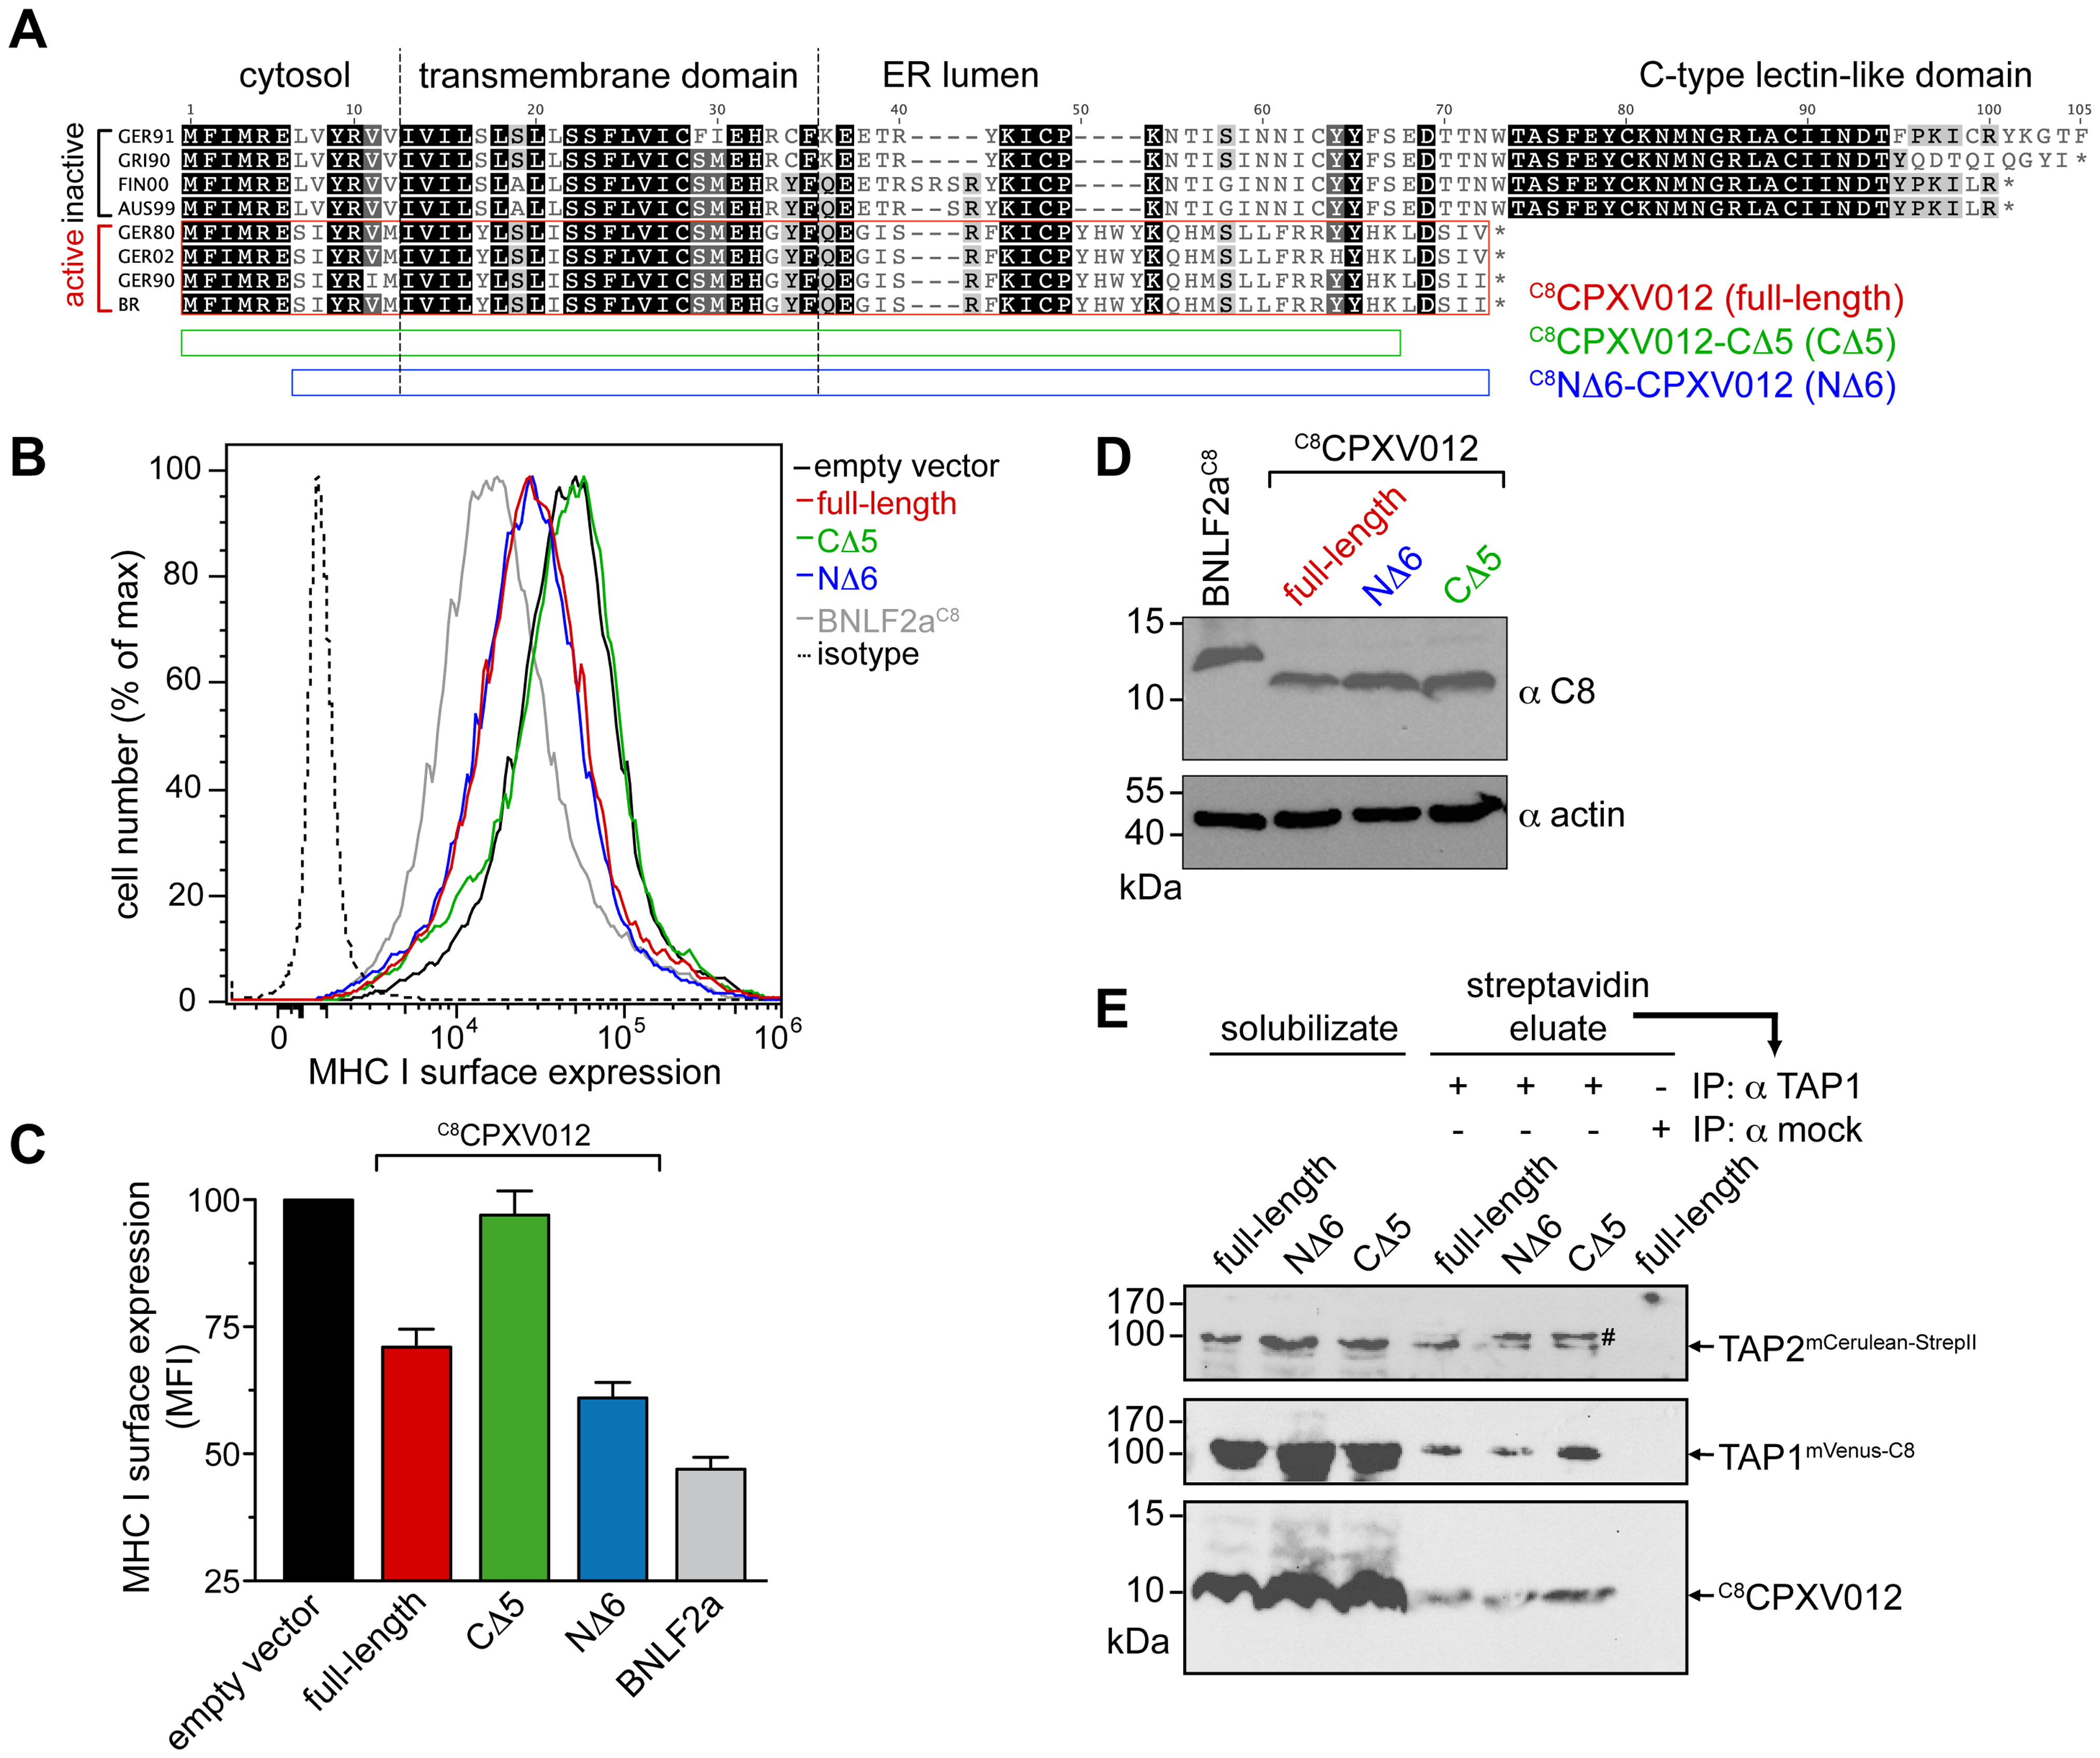 CPXV012 evolved a unique ER-lumenal sequence that is essential for TAP inhibition.